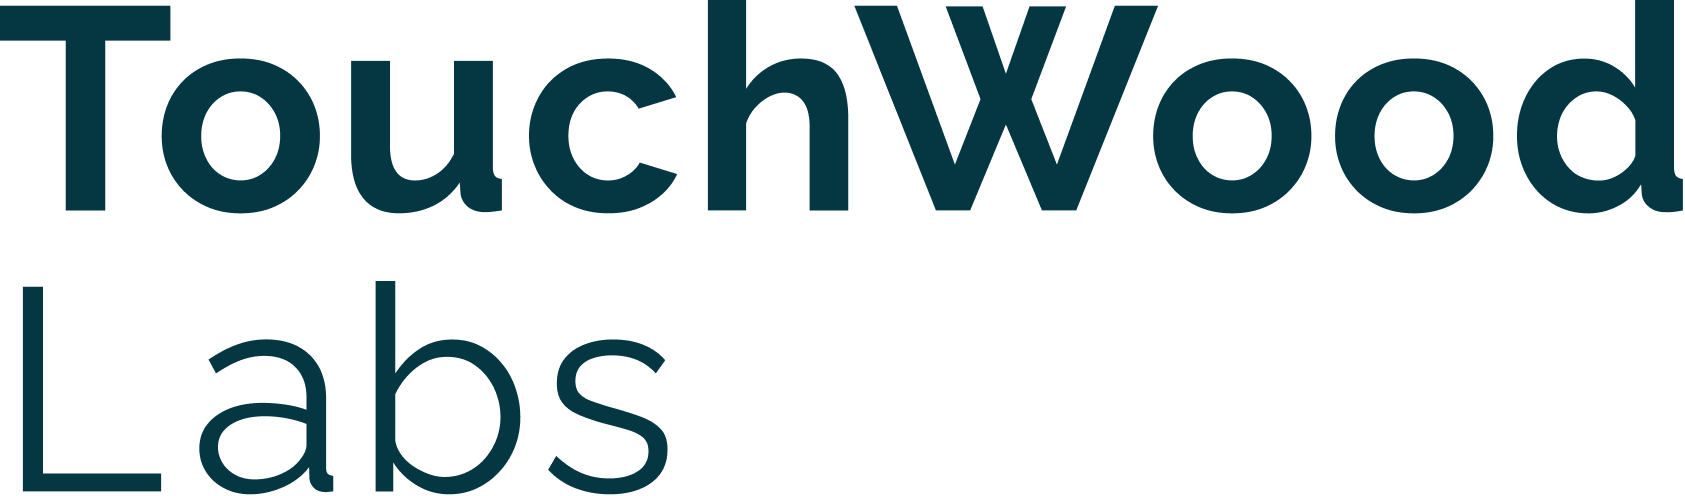 TouchWood Labs